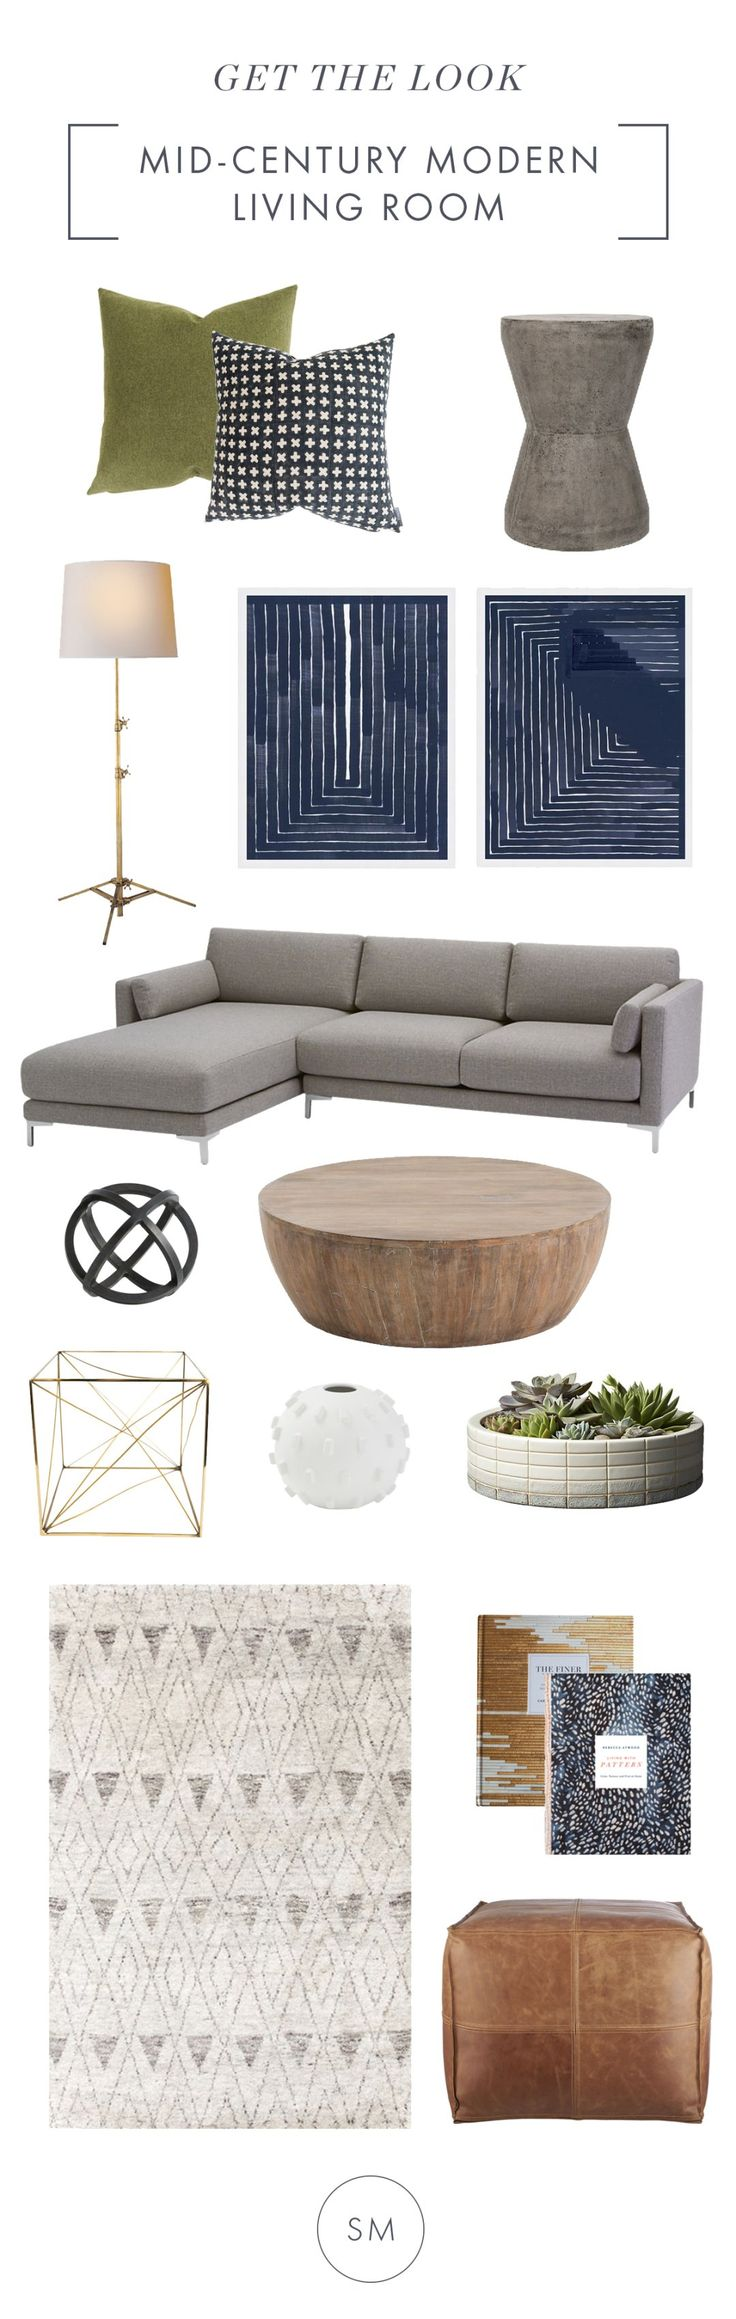 Shop SHERLOCK, NANCY, Safavieh VNN1001A Torre Concrete Accent Table Dark Grey - 17.3 x 12.2 x 12.2 in., STUDIO FLOOR LAMP, NAVY COLLECTION 2, NAVY COLLECTION 1, district 2-piece sectional sofa, JENSEN COFFEE TABLE, BLACK SPHERE, BRASS CUBE OBJECT, SATELLITE VASE IN WHITE, gorge grid bowl, MASINISSA, LIVING WITH PATTERN, THE FINER THINGS, leather pouf and more